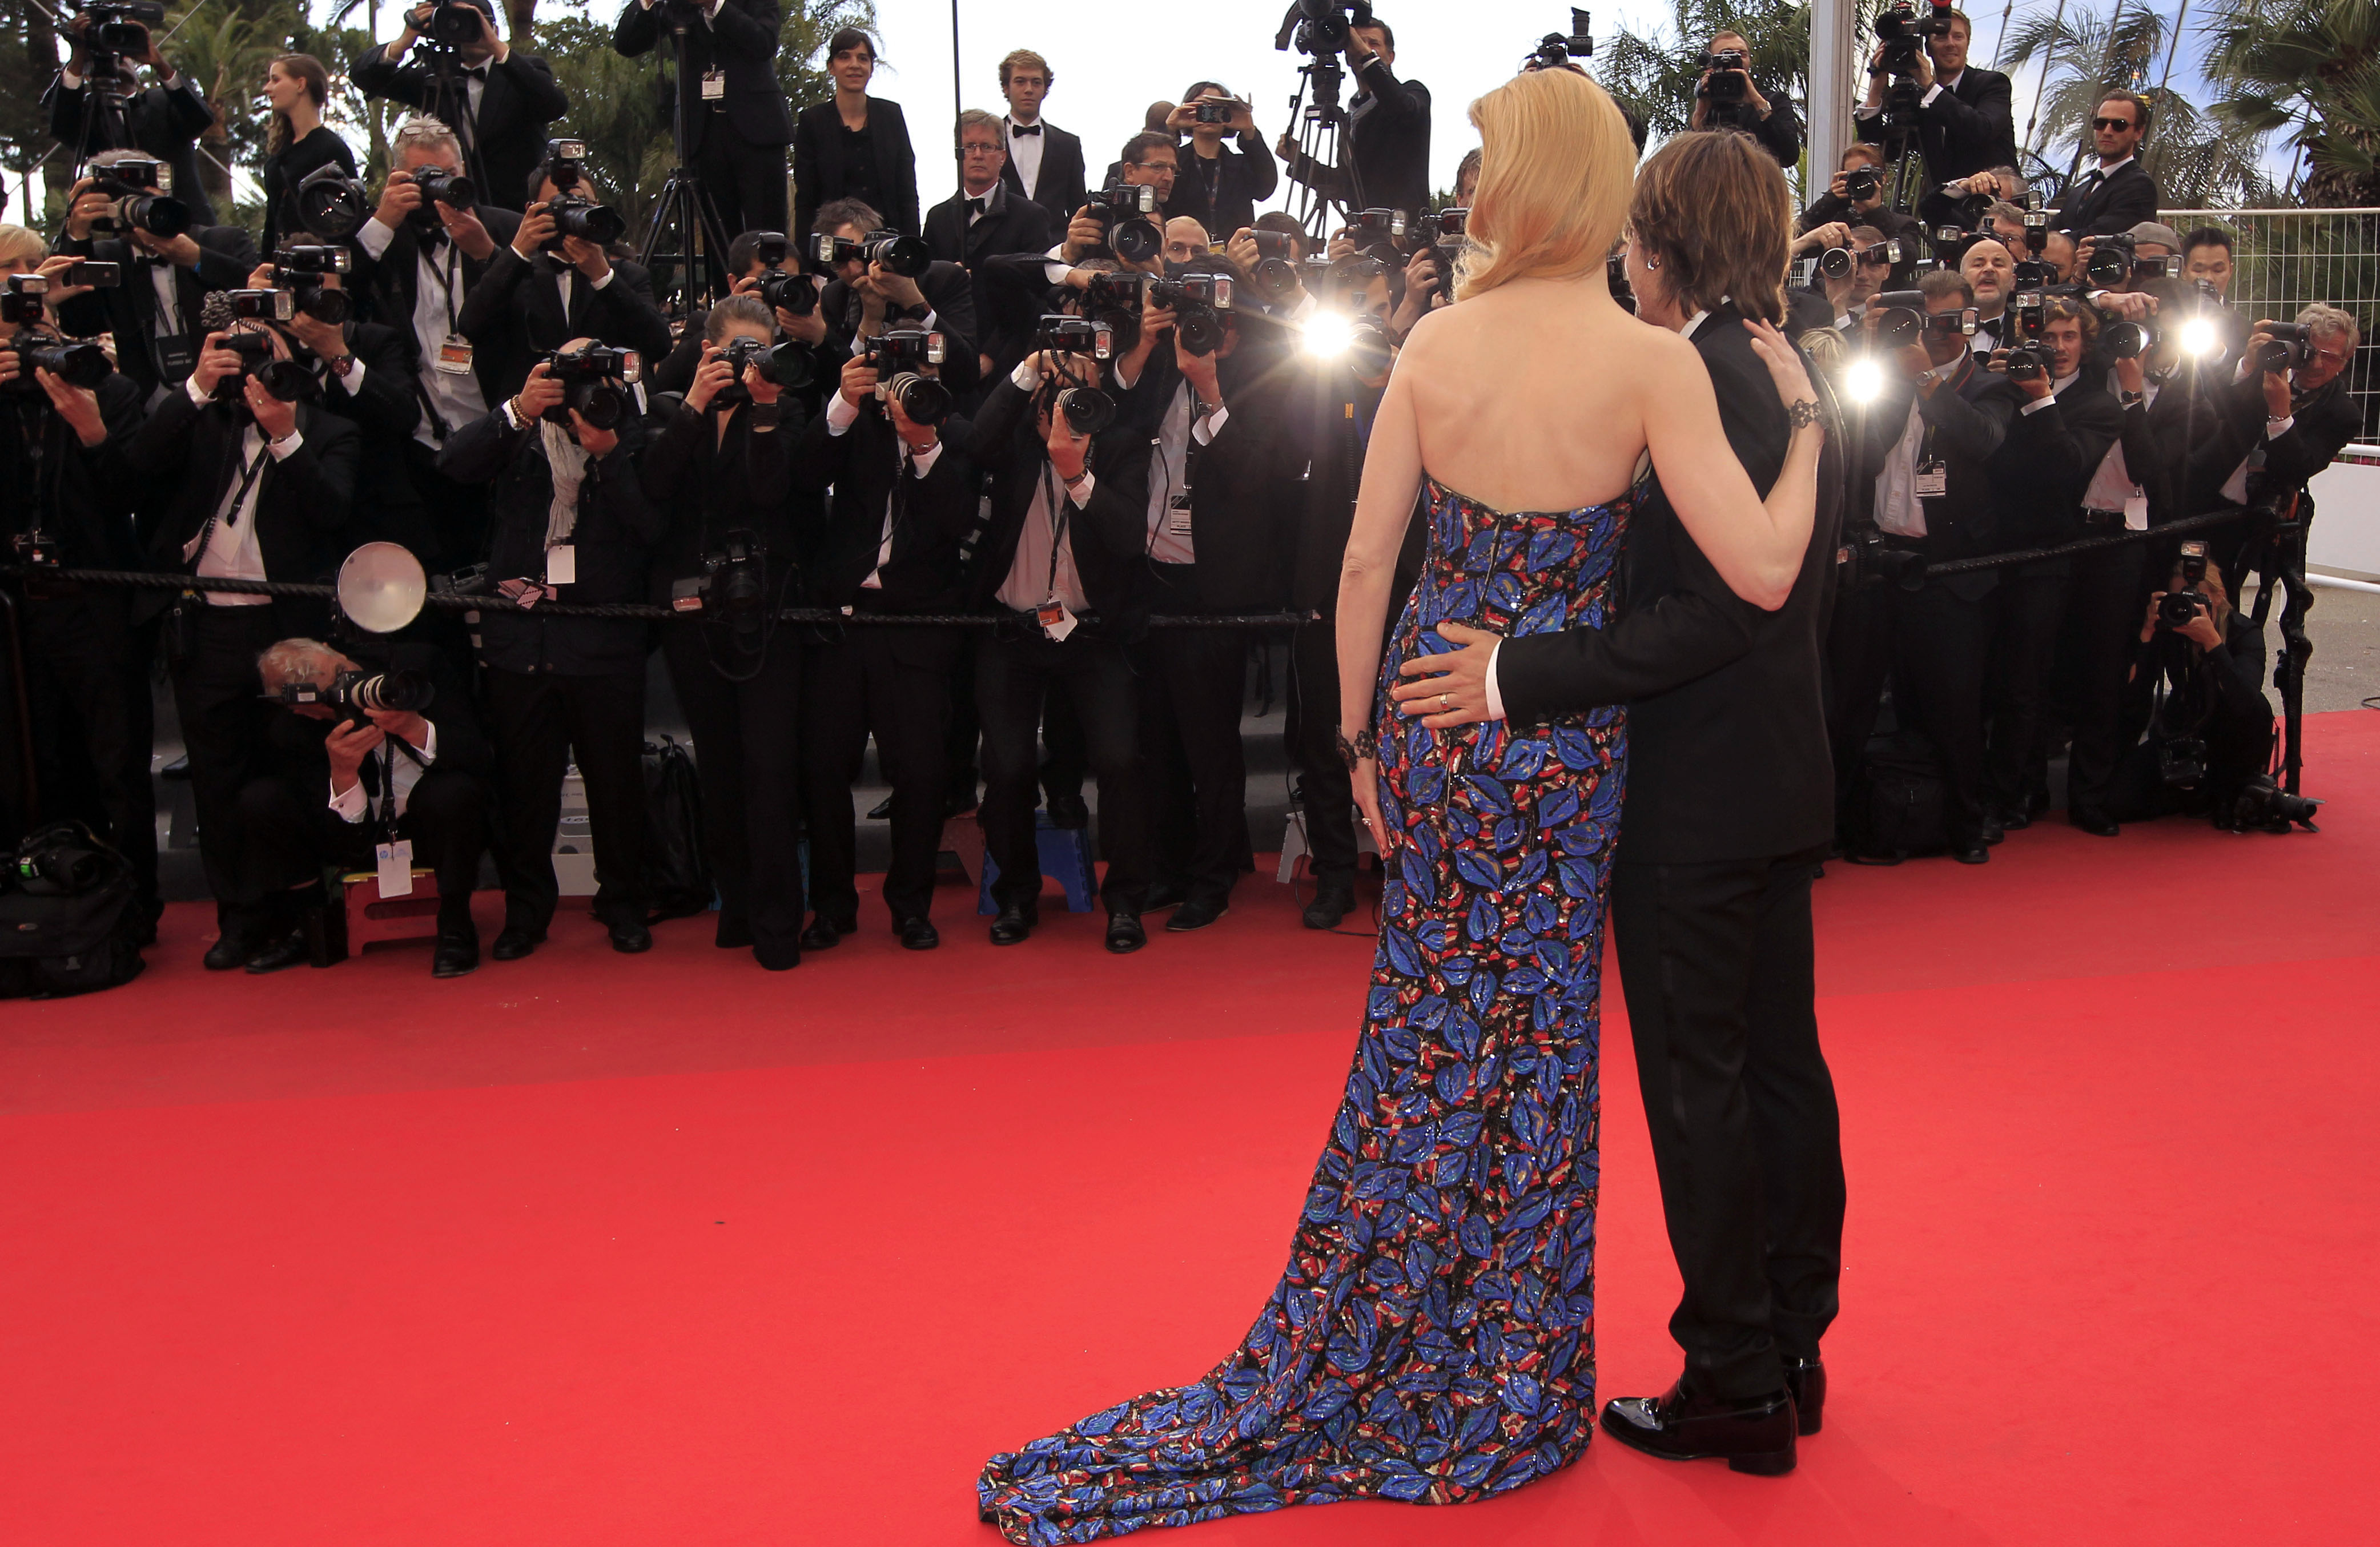 Actress Nicole Kidman, left, and her husband singer Keith Urban pose for photographers as they arrive for the screening of the film Inside Llewyn Davis at the 66th international film festival, in Cannes, southern France, Sunday, May 19, 2013. (Photo by Joel Ryan/Invision/AP)